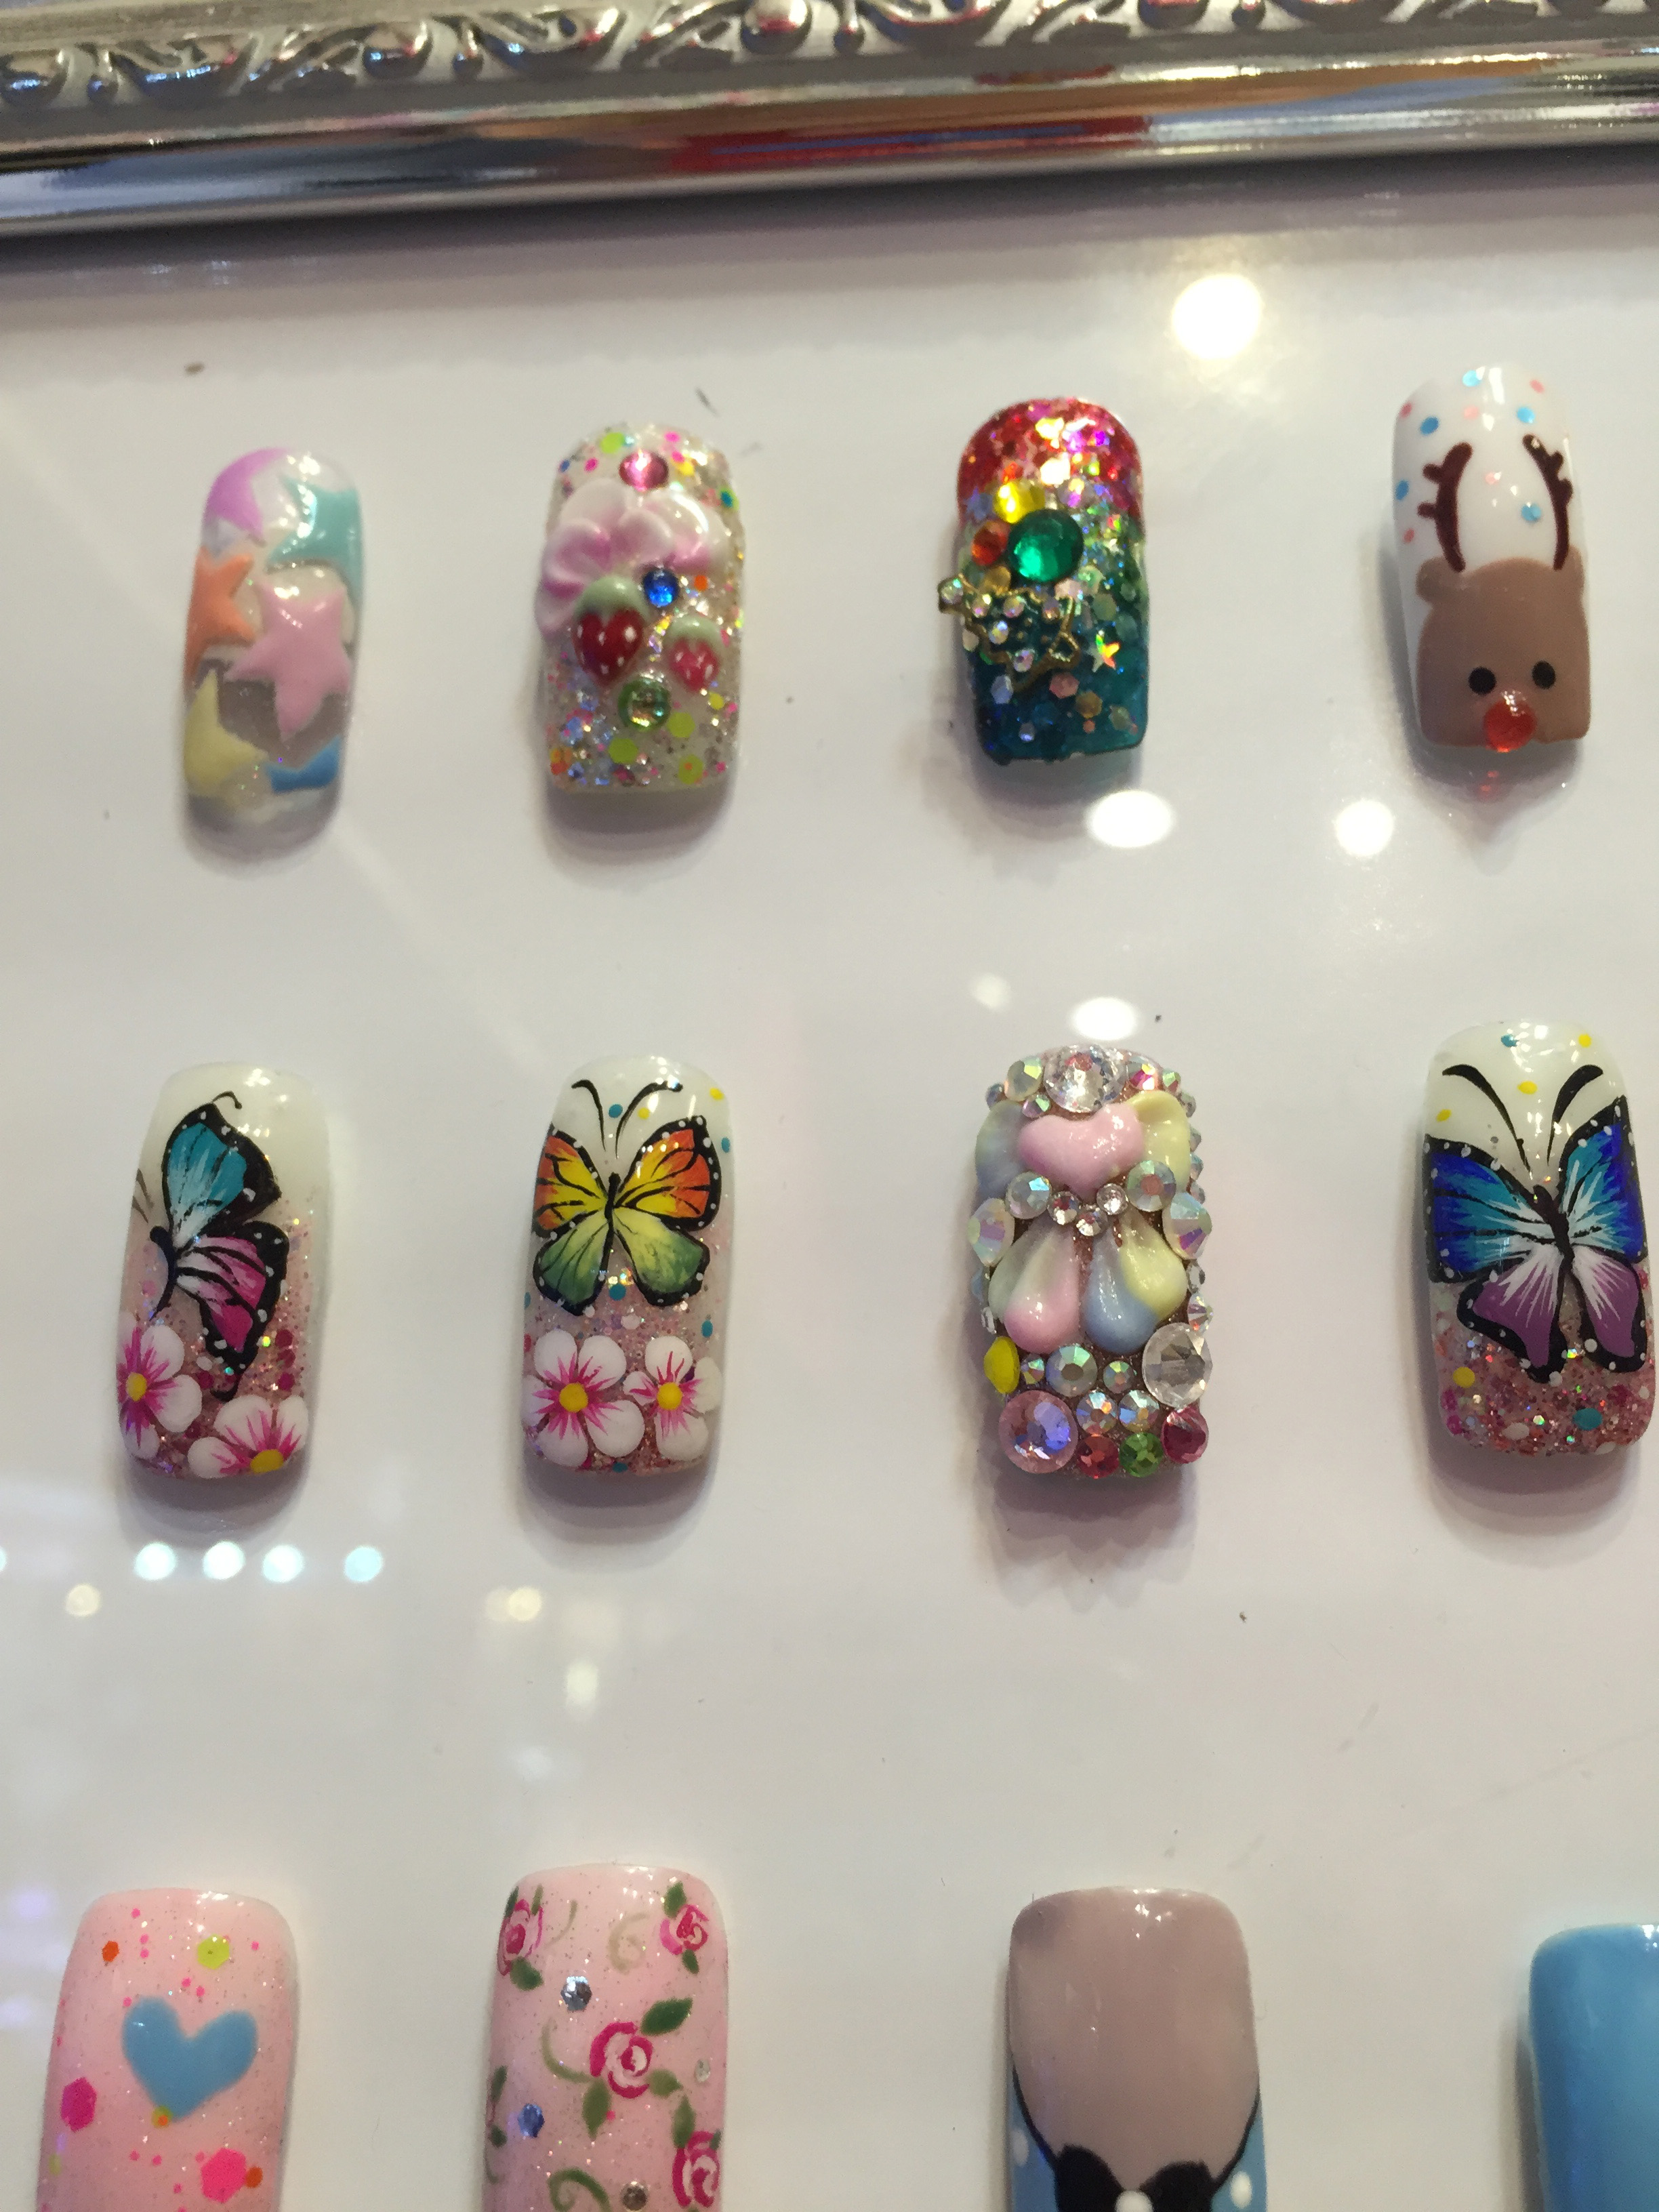 Where to find the best nail salon artists in bangkok the nail art at glamour girls bangkok prinsesfo Images